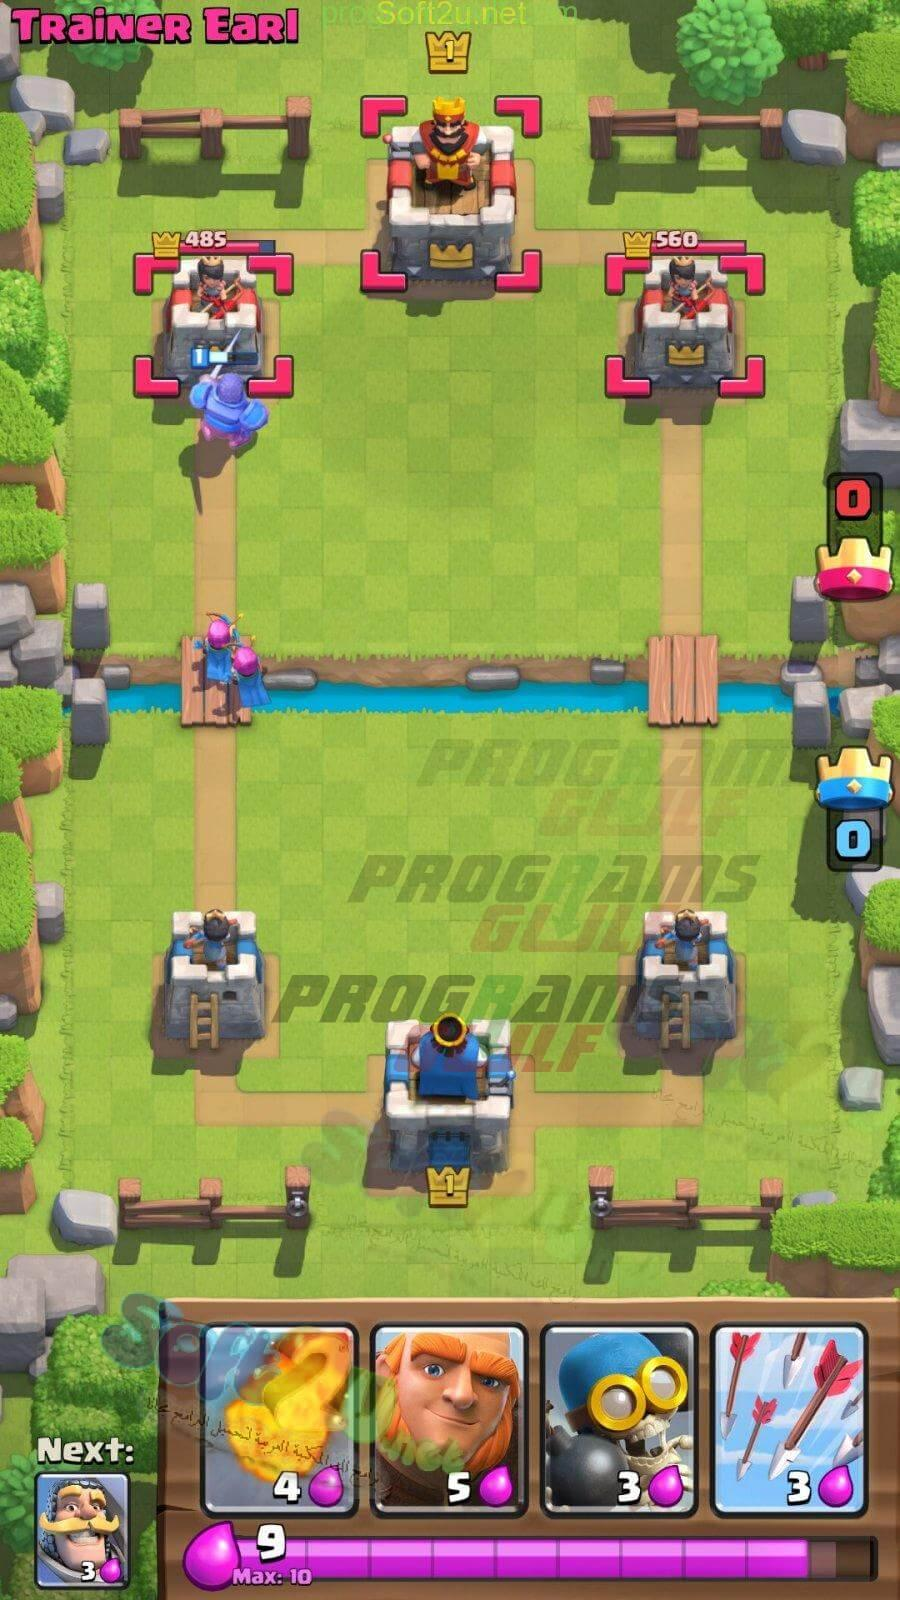 https://www.programs-gulf.com/wp-content/uploads/2017/02/Clash-Royale-3.jpg